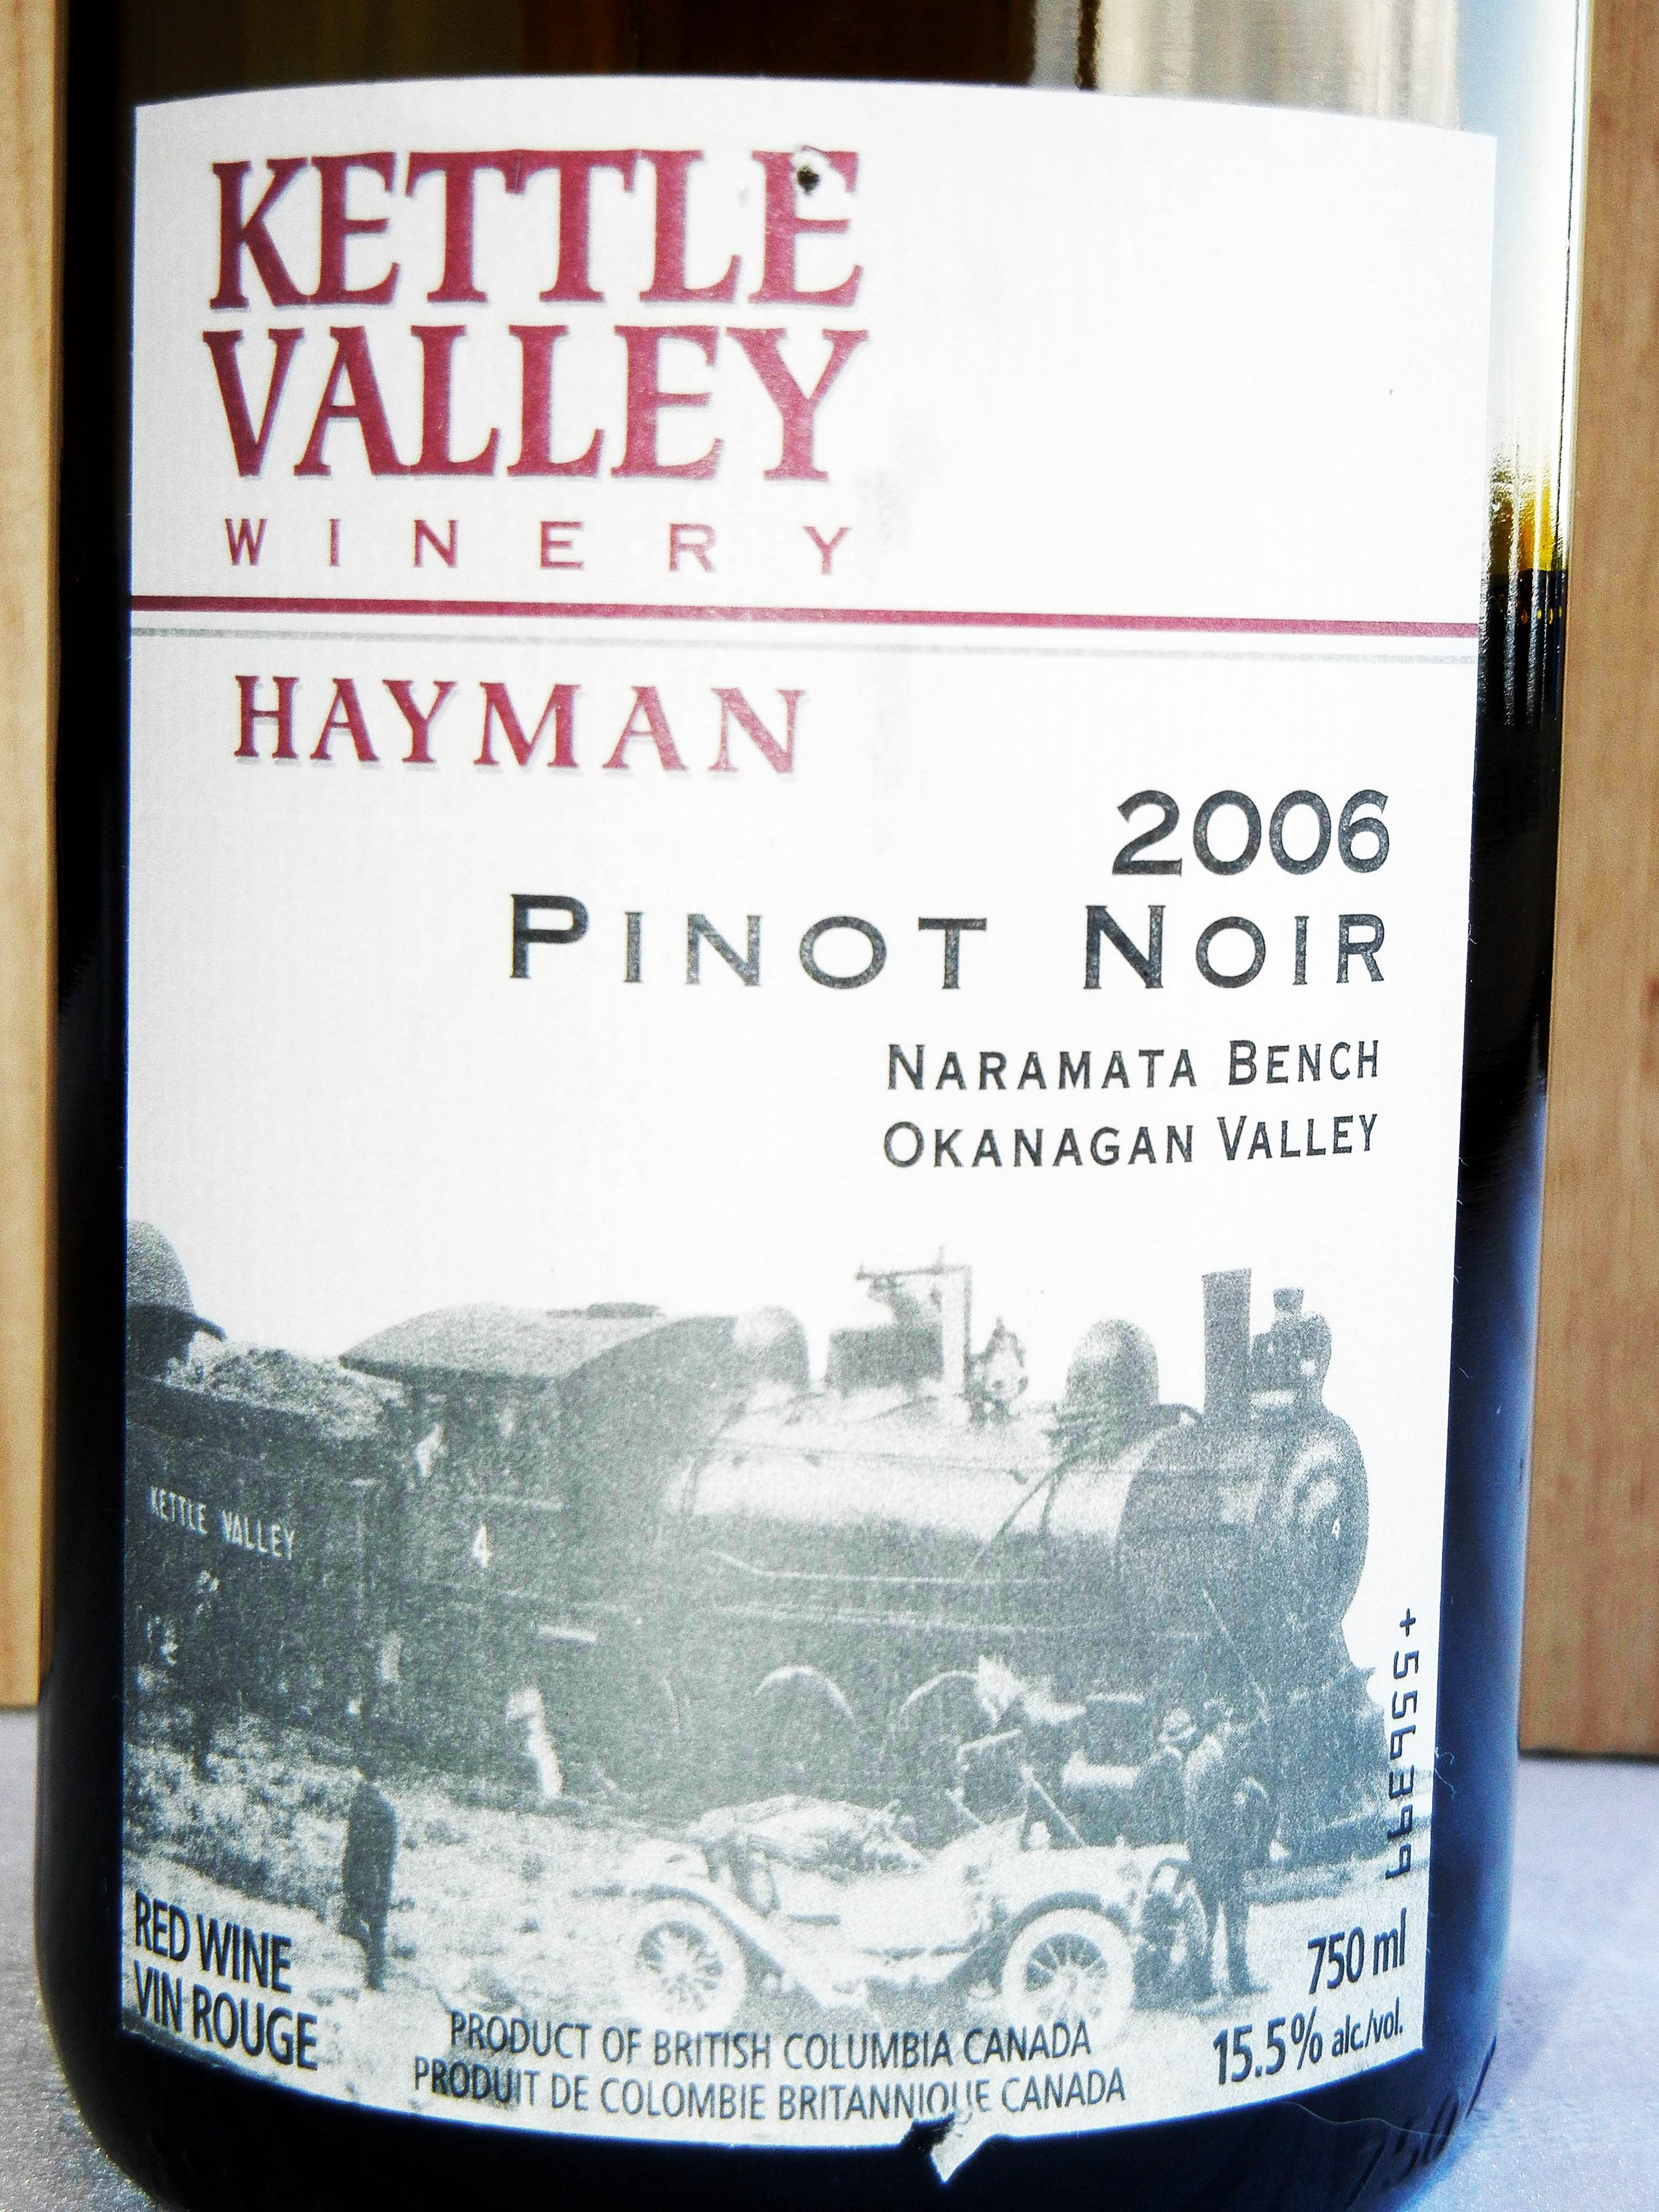 Kettle Valley Hayman Pinot Noir 2006 Label - BC Pinot Noir Tasting Review 12